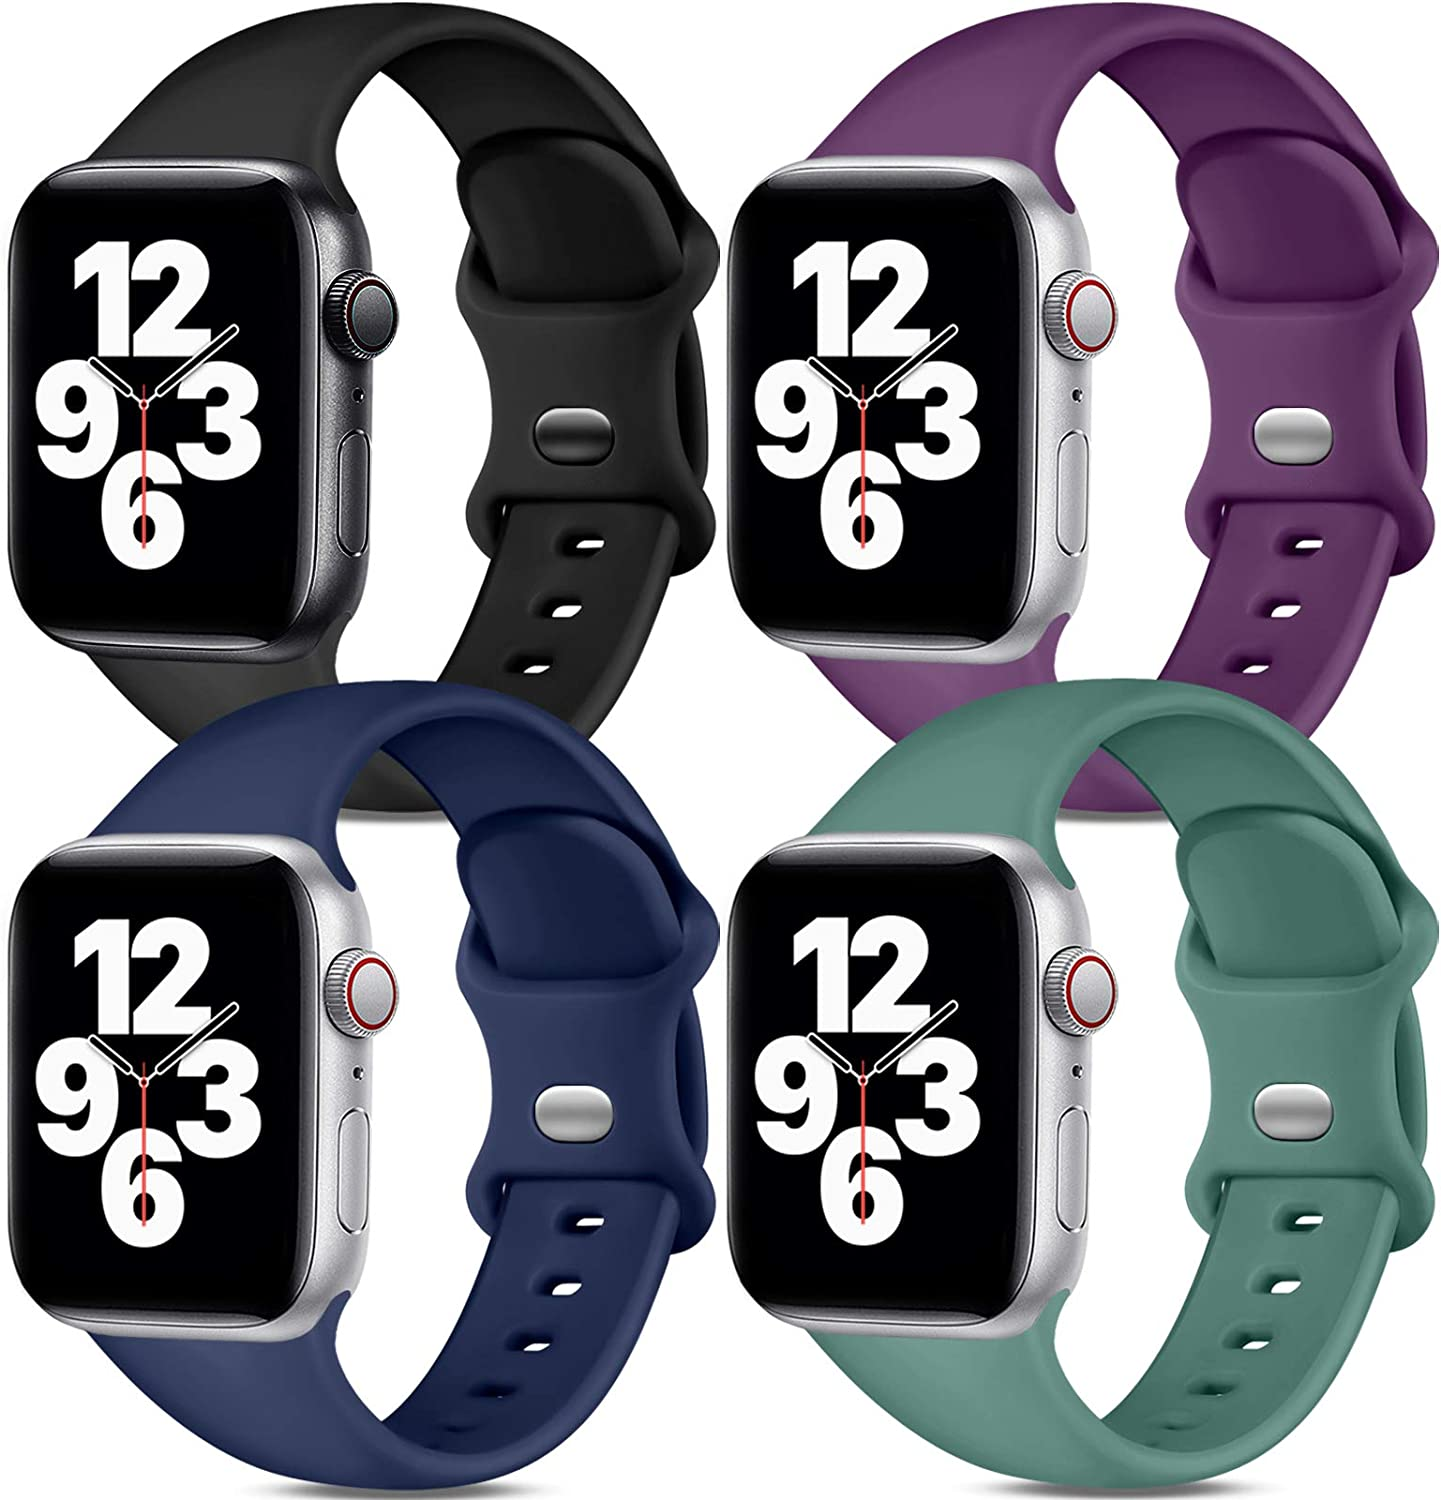 Dirrelo Band Compatible with Apple Watch Bands 38mm 40mm, [4-Pack] Soft Silicone Strap Wristbands for iWatch Series 3 5 6 4 2 1 SE Women Men, Small Black, Dark Purple, Dark Blue, Pine Green